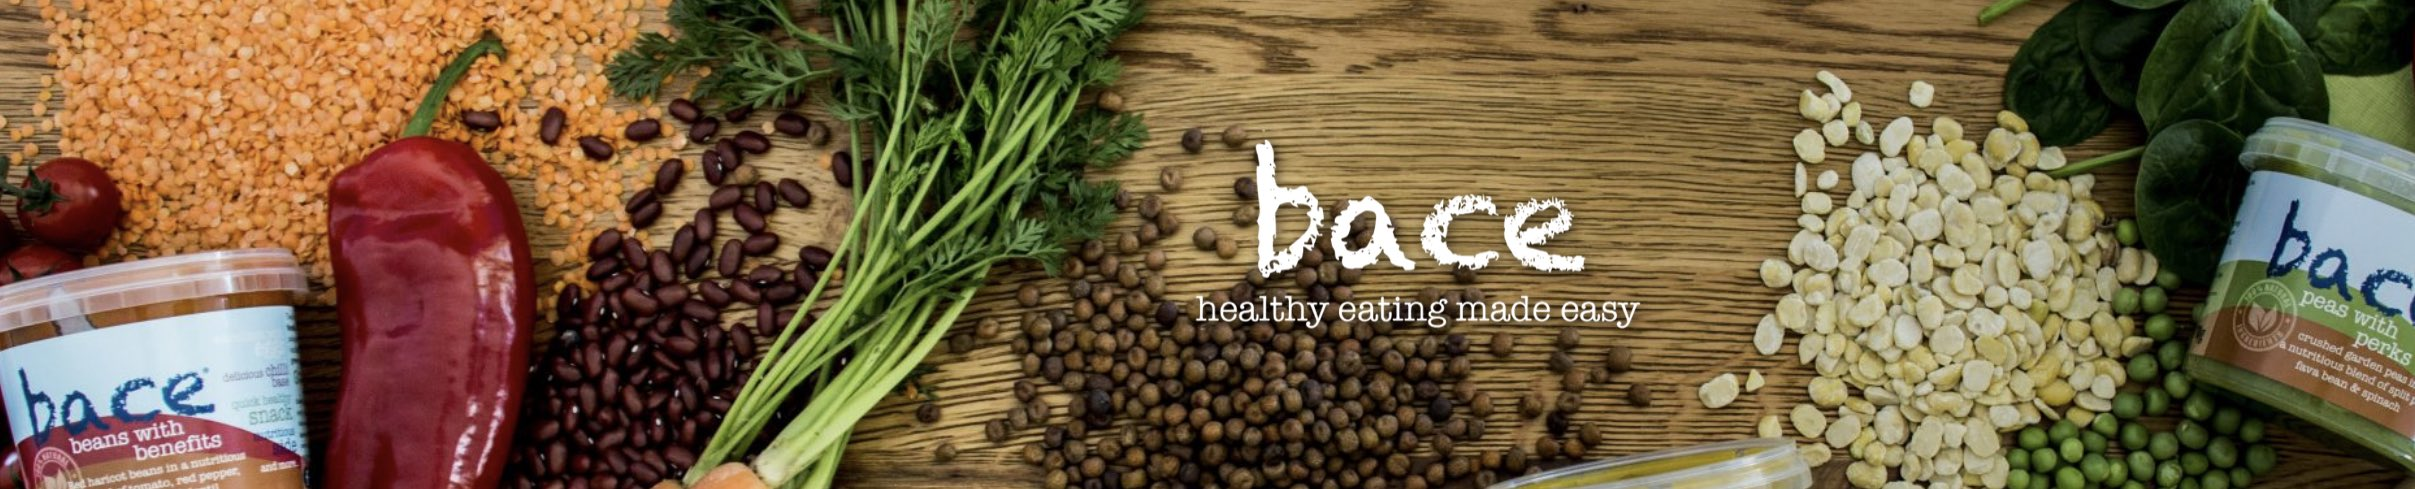 Bace foods Healthy eating, made easy